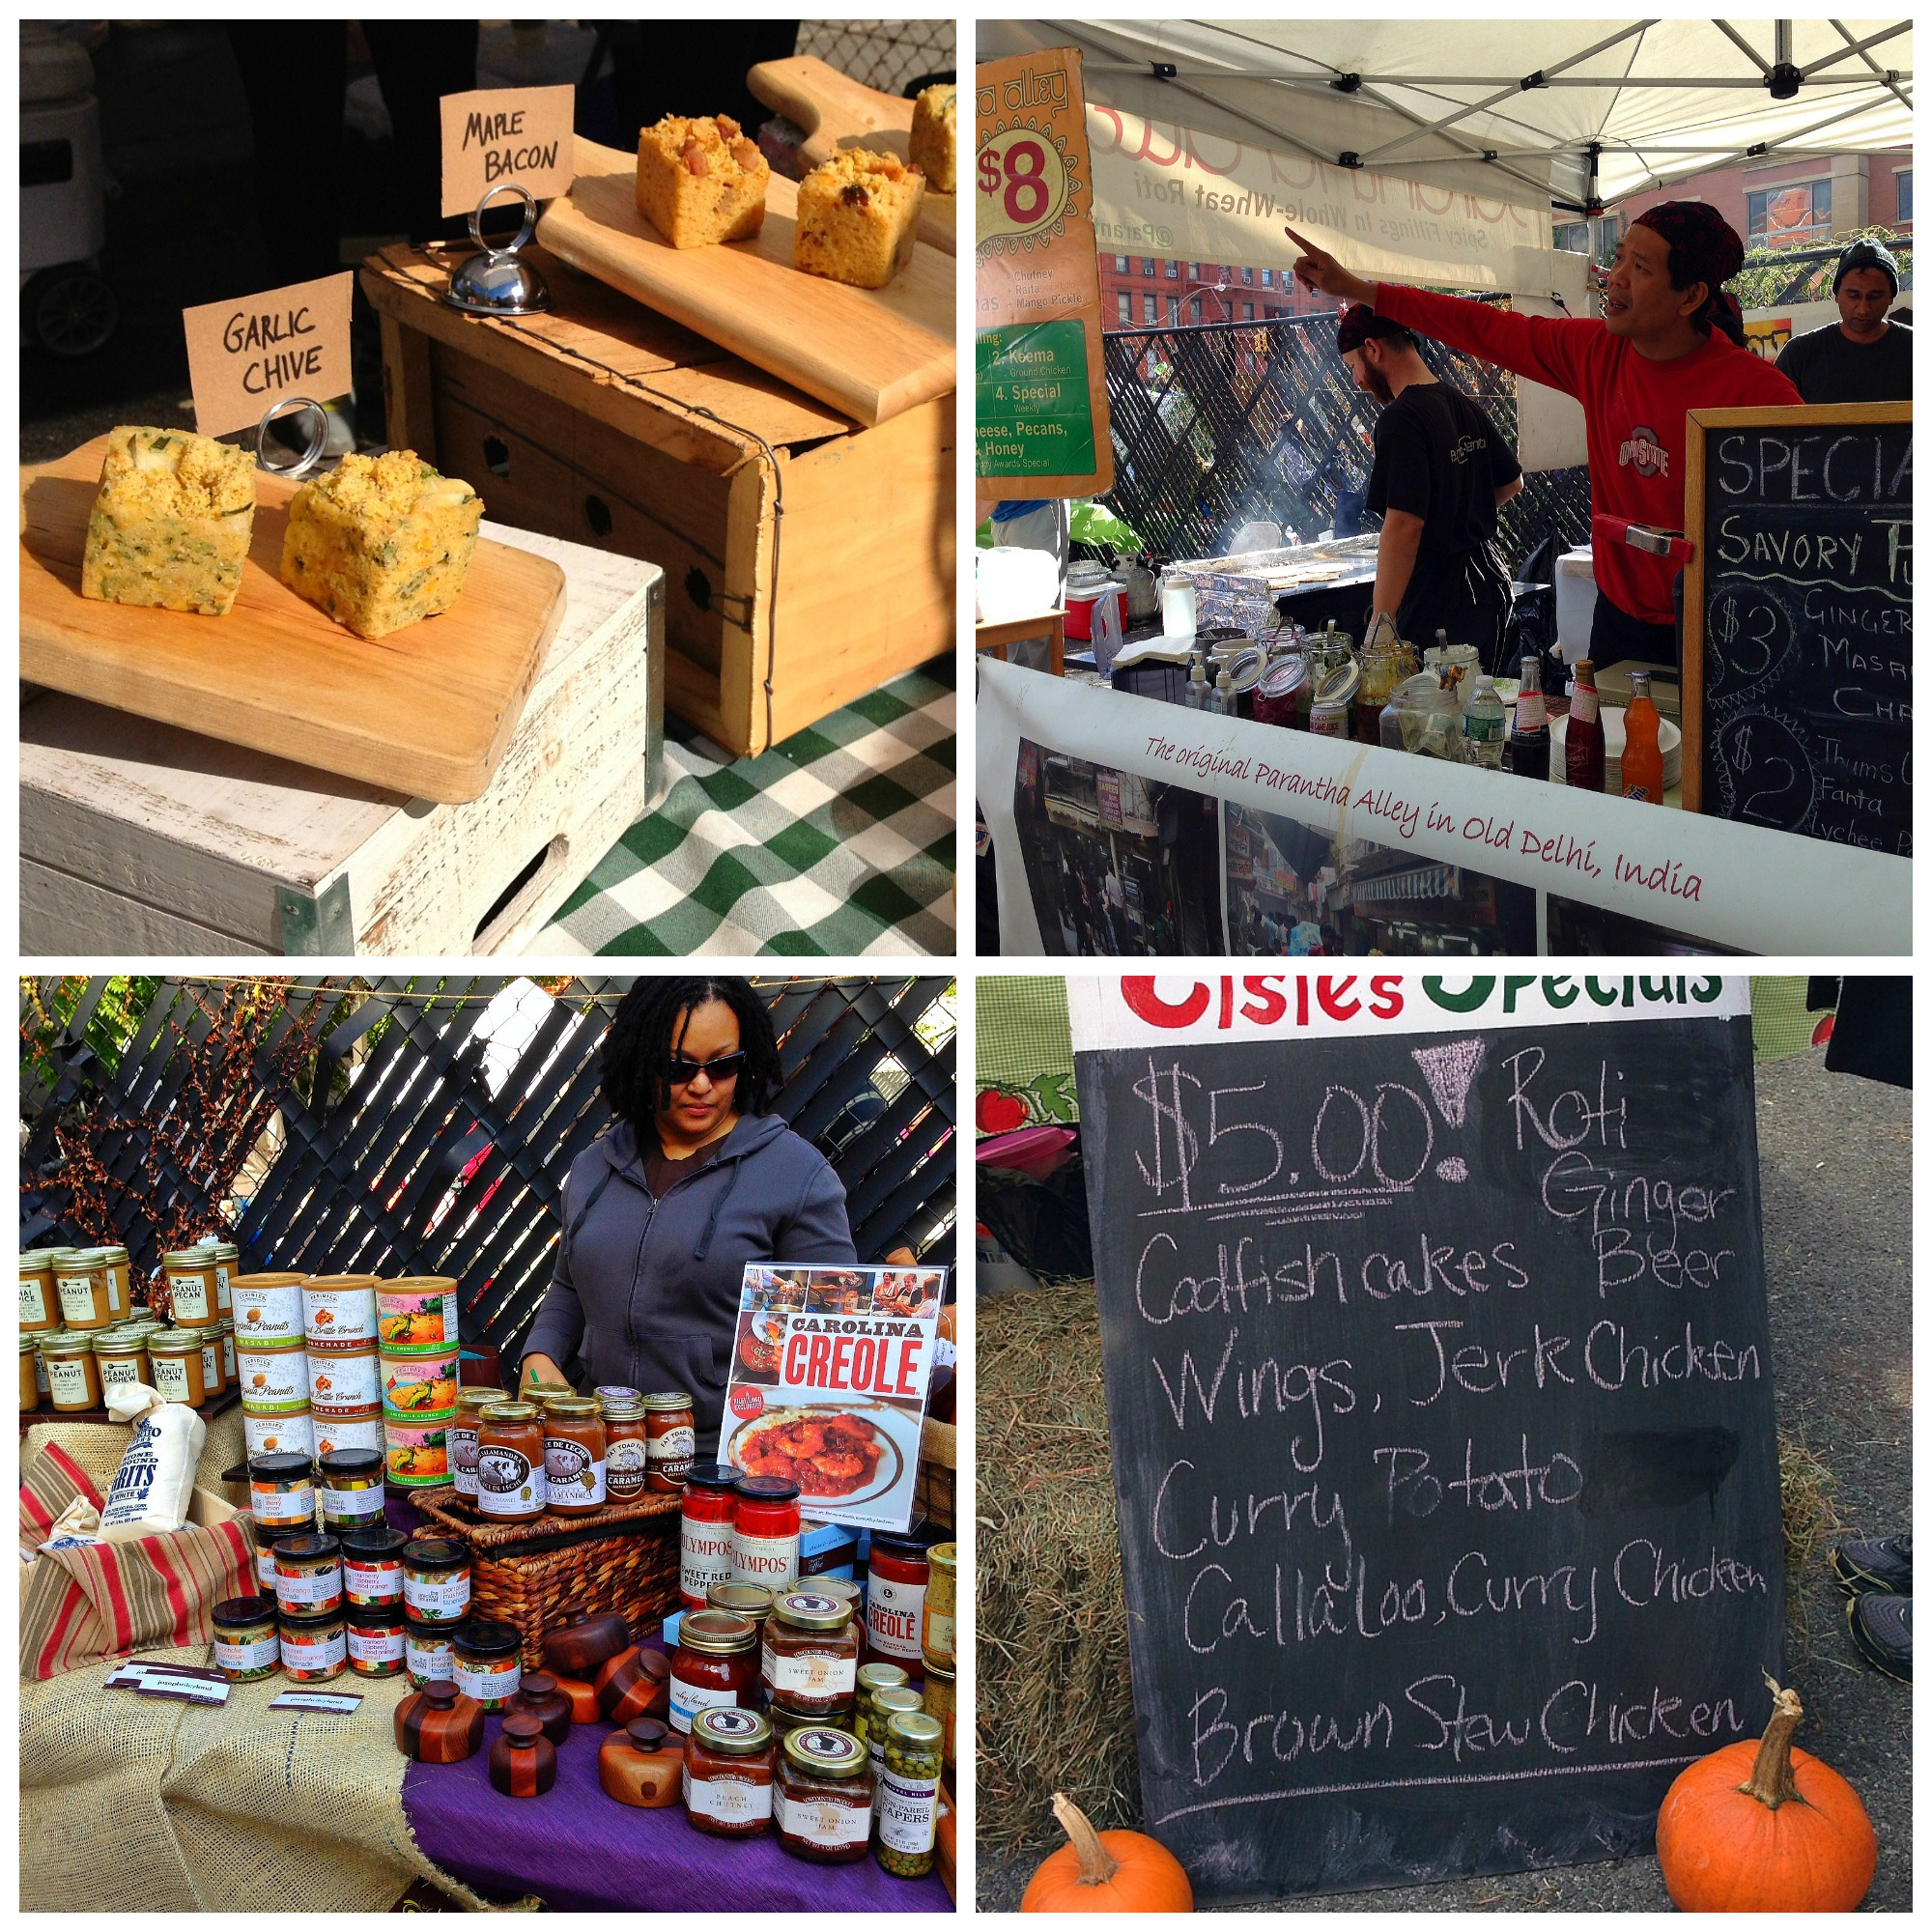 Vendors selling handmade food and innovative gourmet products at Harlem Food Festival 2013